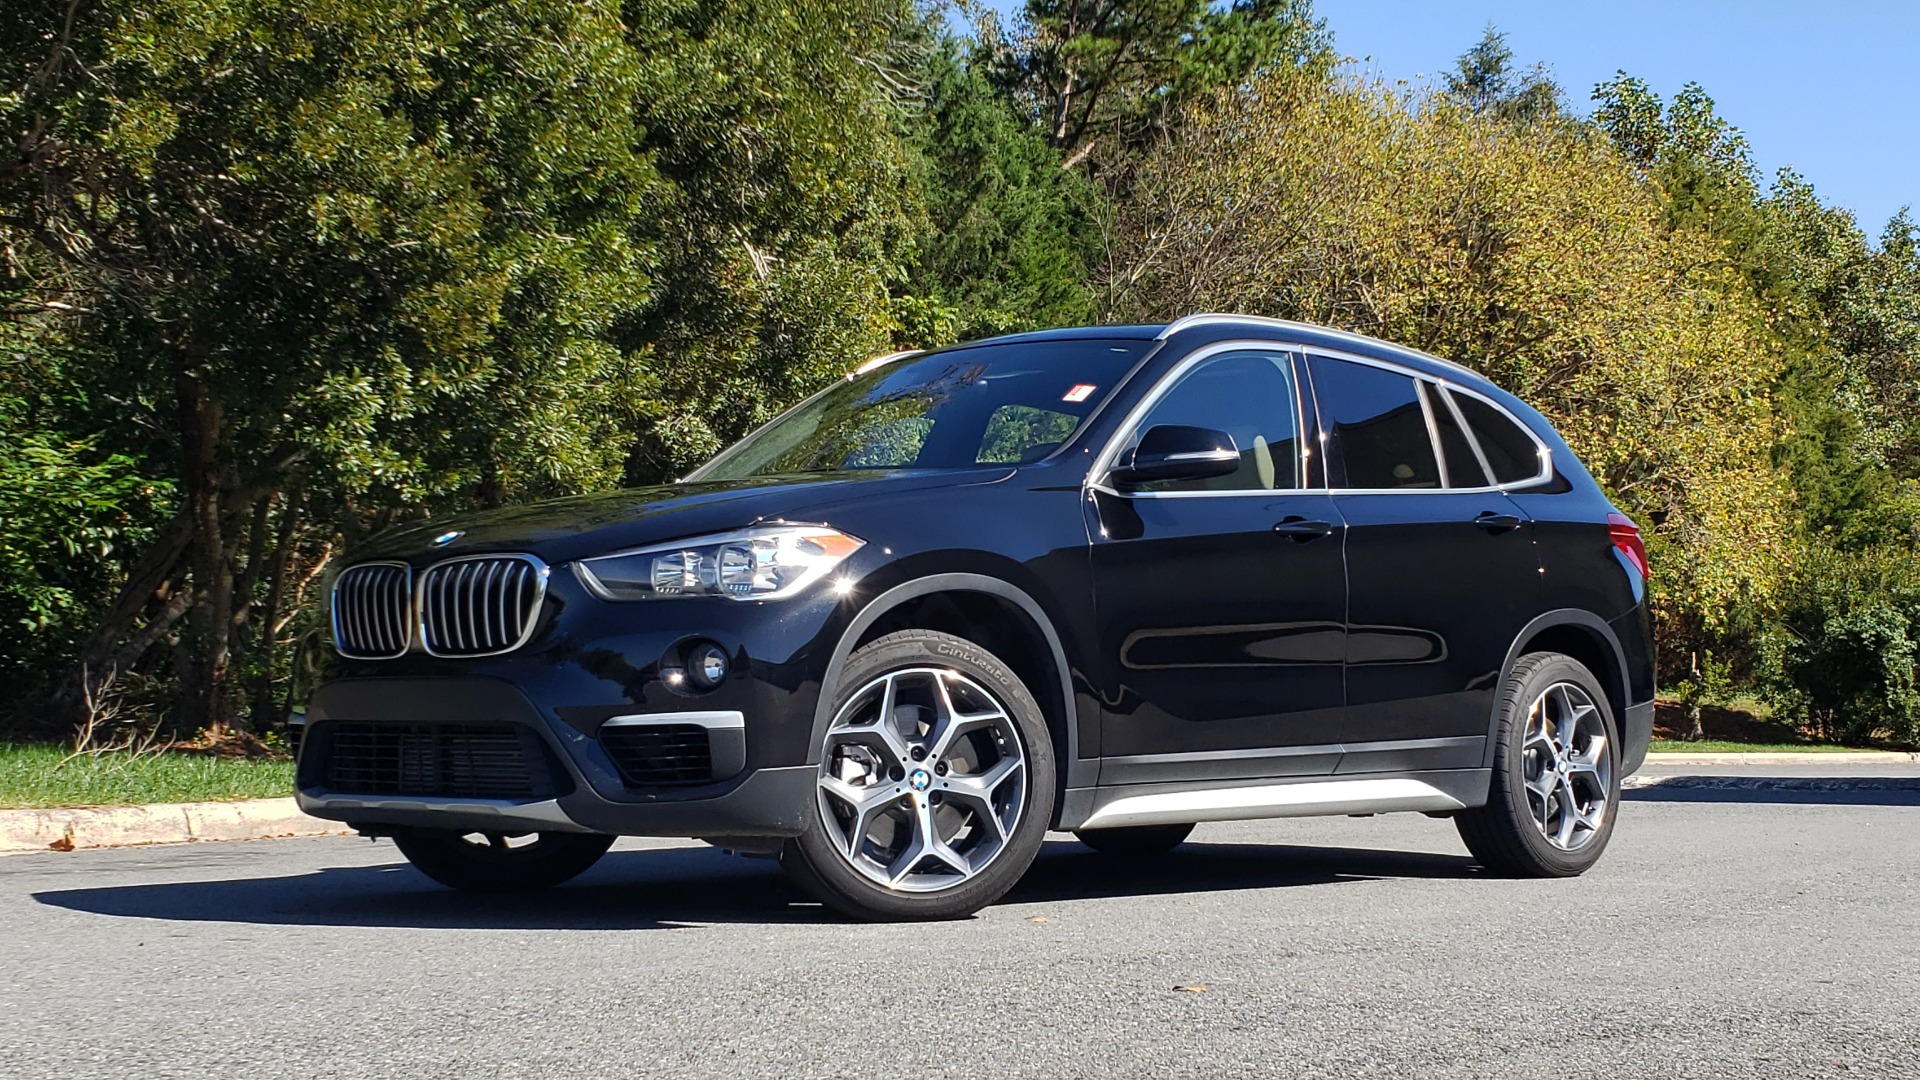 Used 2018 BMW X1 SDRIVE28I / HEATED SEATS / 4-CYL / 8-SPD AUTO / REARVIEW for sale Sold at Formula Imports in Charlotte NC 28227 4